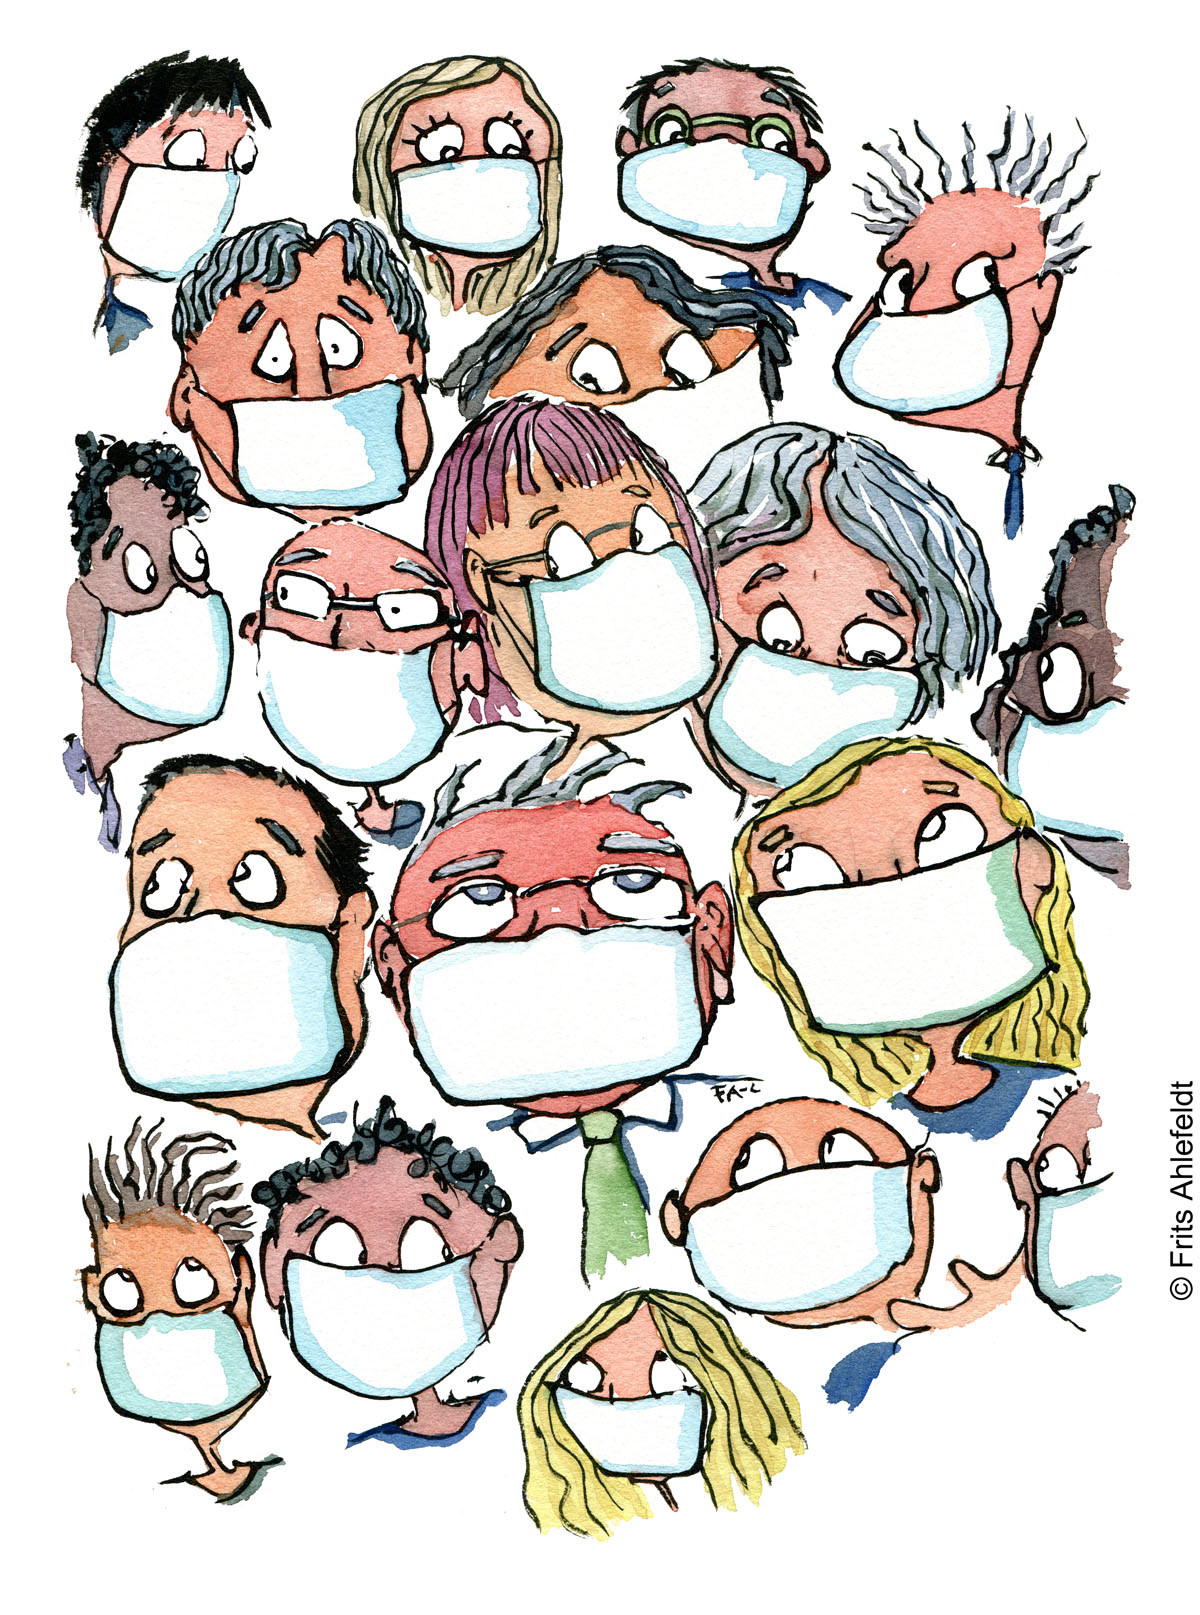 Illustration of people looking scared with facemasks on. Drawn journalism drawing by Frits Ahlefeldt